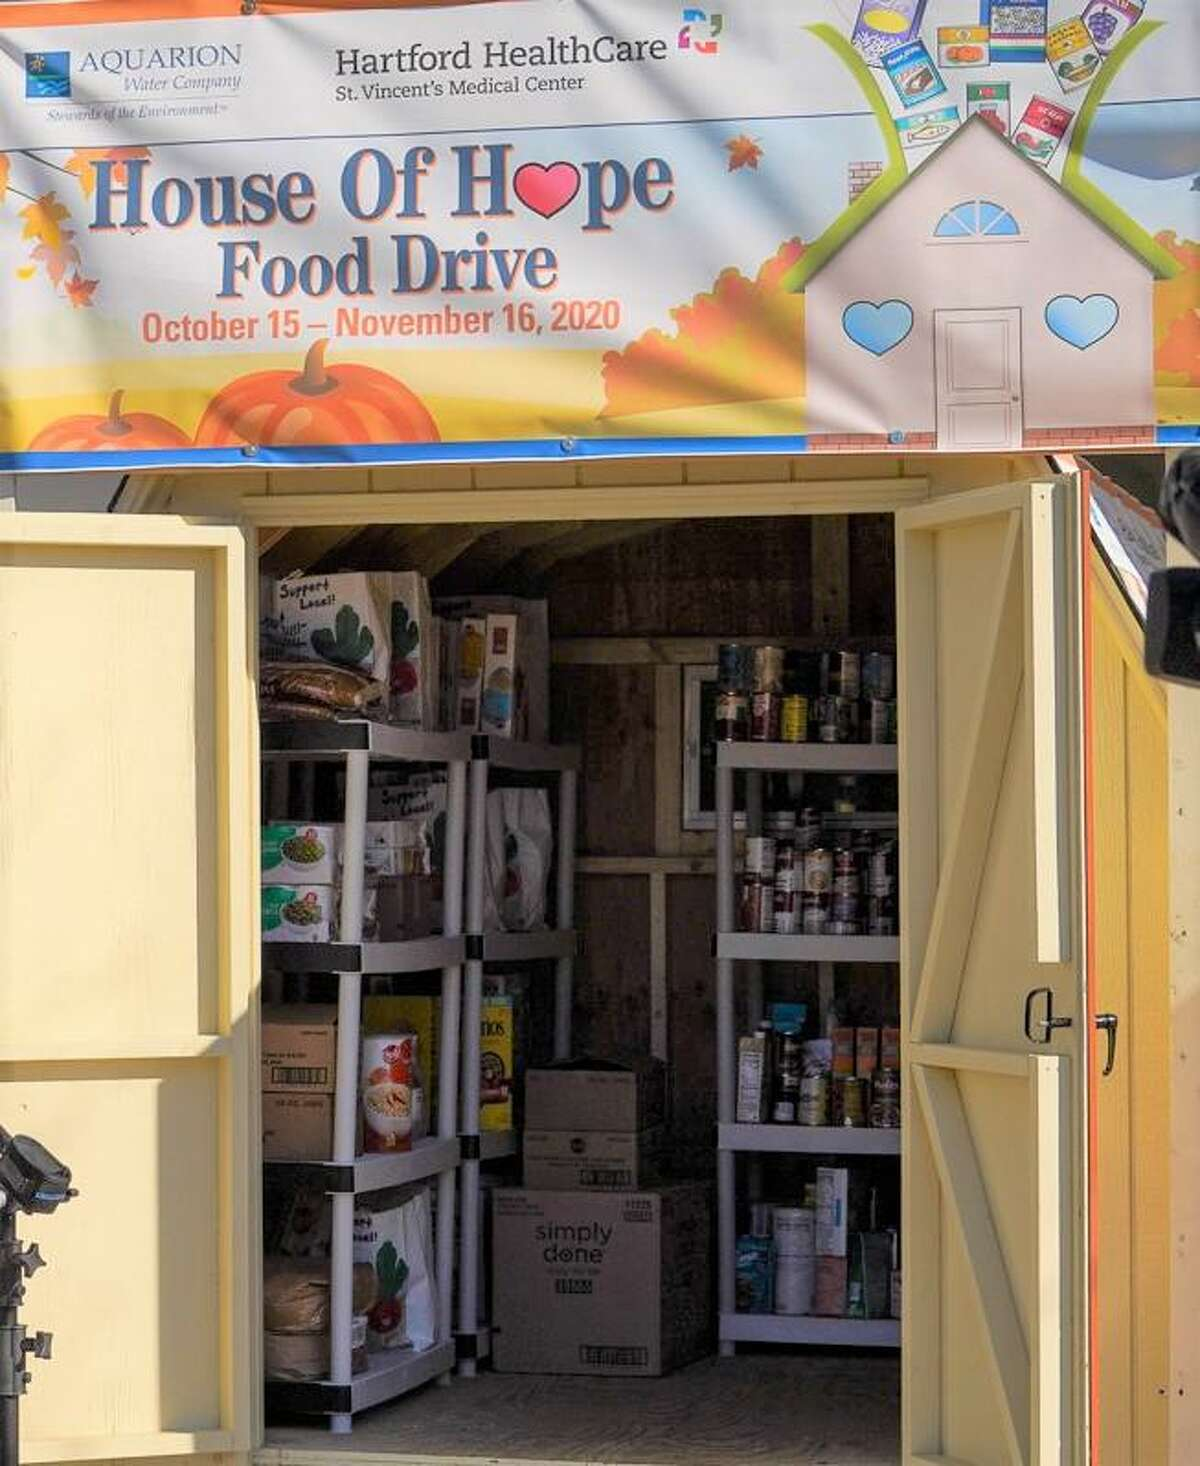 The House of Hope pantry at St. Vincent's Medical Center, 2800 Main St. Bridgeport.